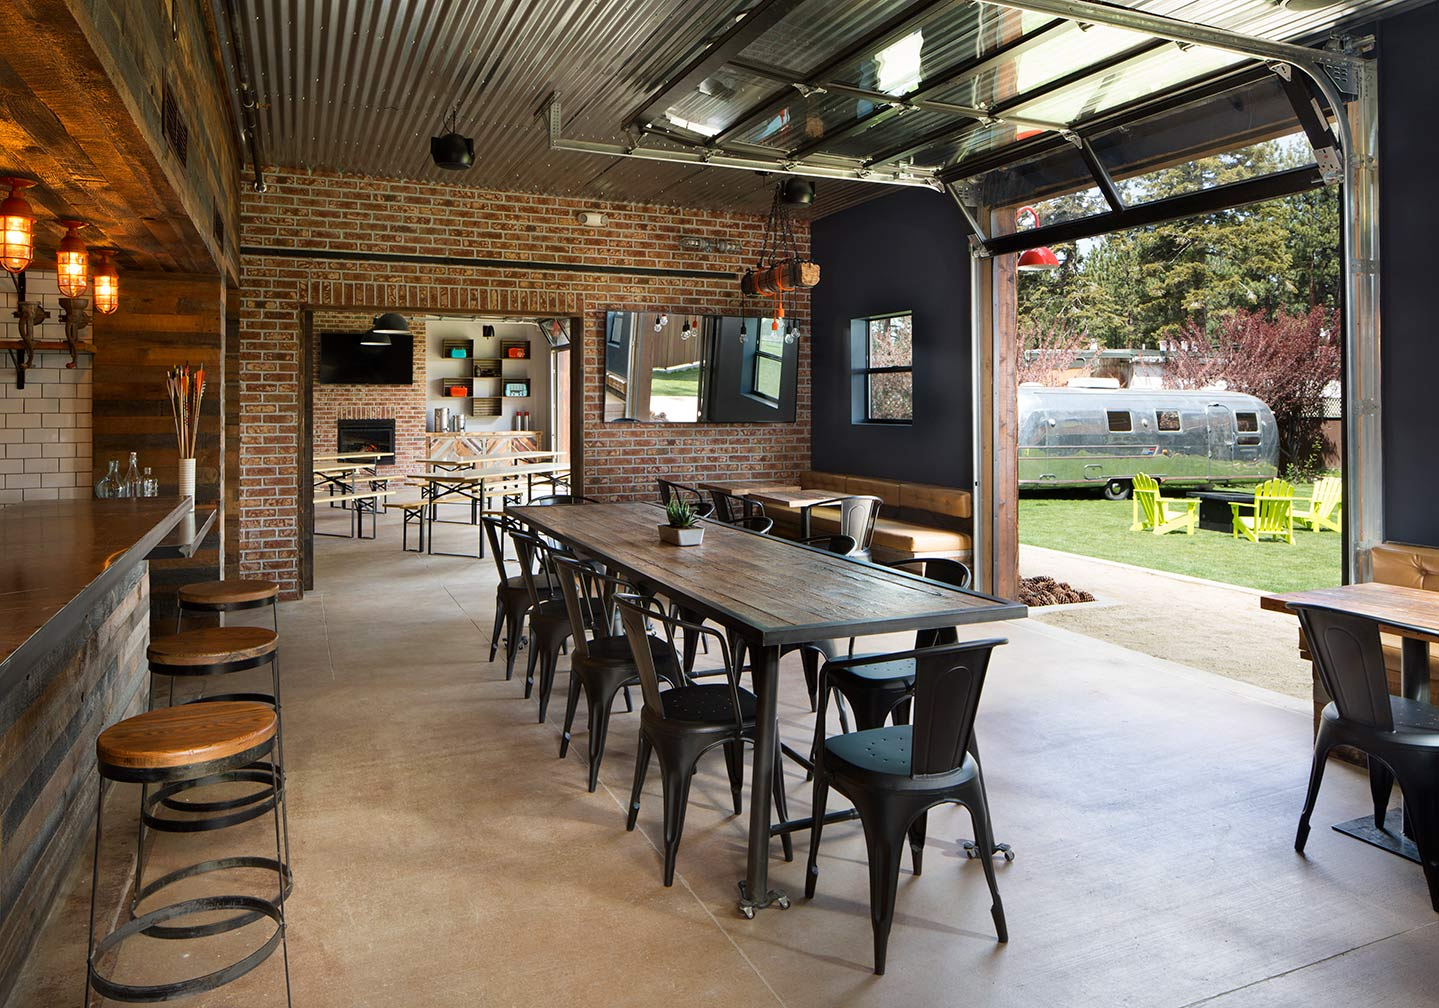 Beer Garden and the Barn